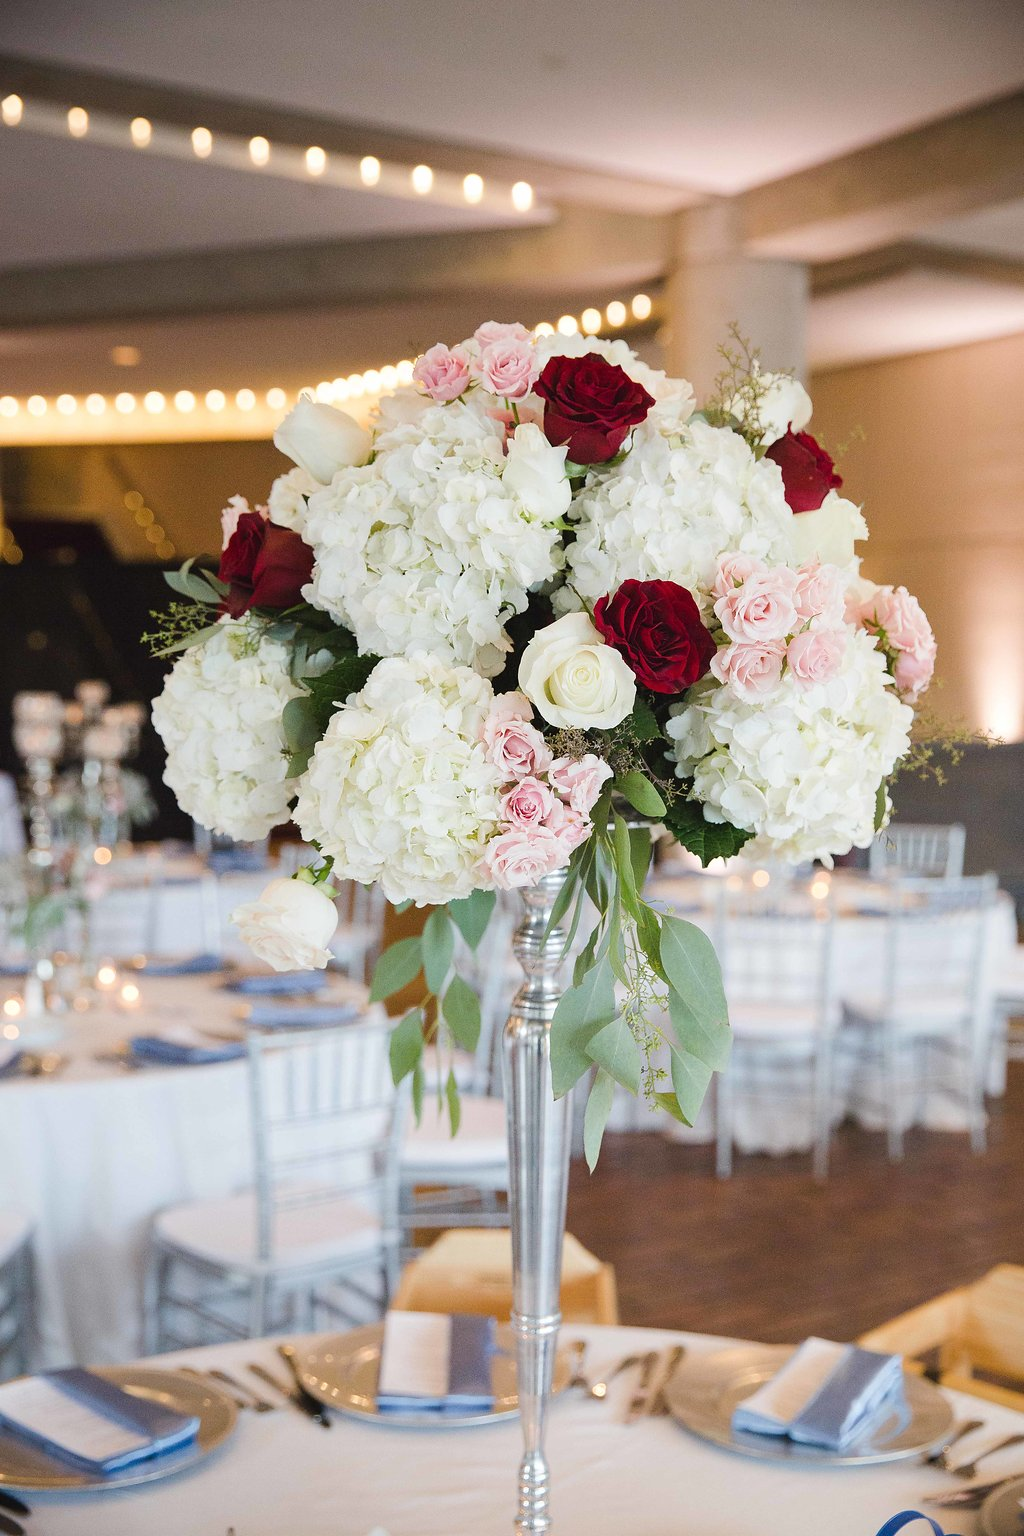 Shades of Blush and Merlot were natural choices (perfect for a wine-theme!) and blue-grey tones appeared in details like the bridesmaid dresses, napkins, and silk sashes down the ceremony aisle.